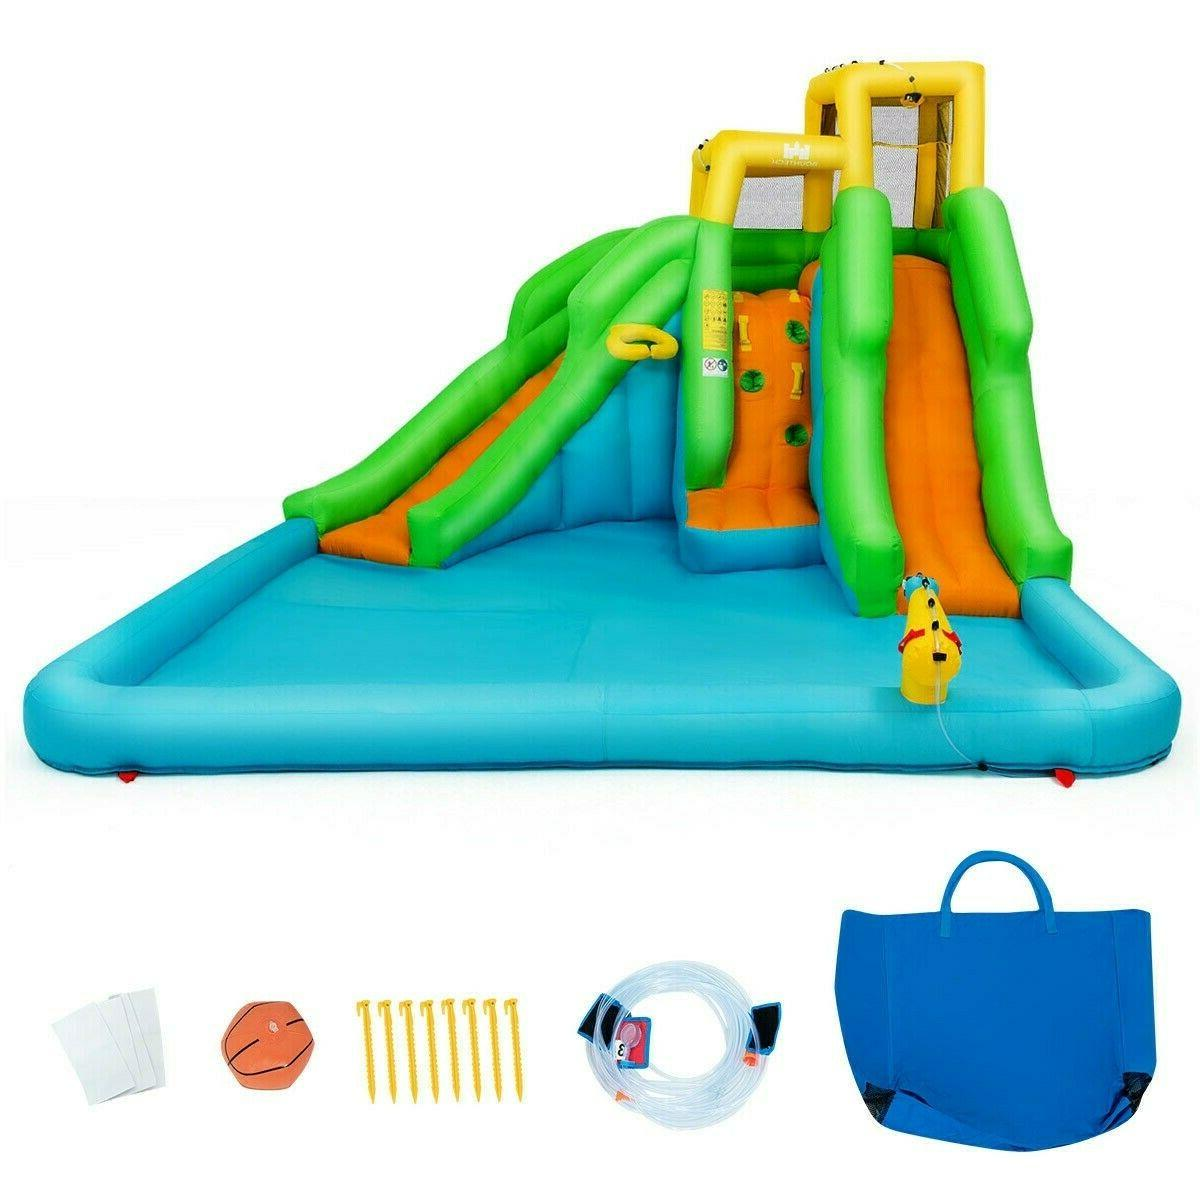 House With Blower Kids Outdoor Bouncer